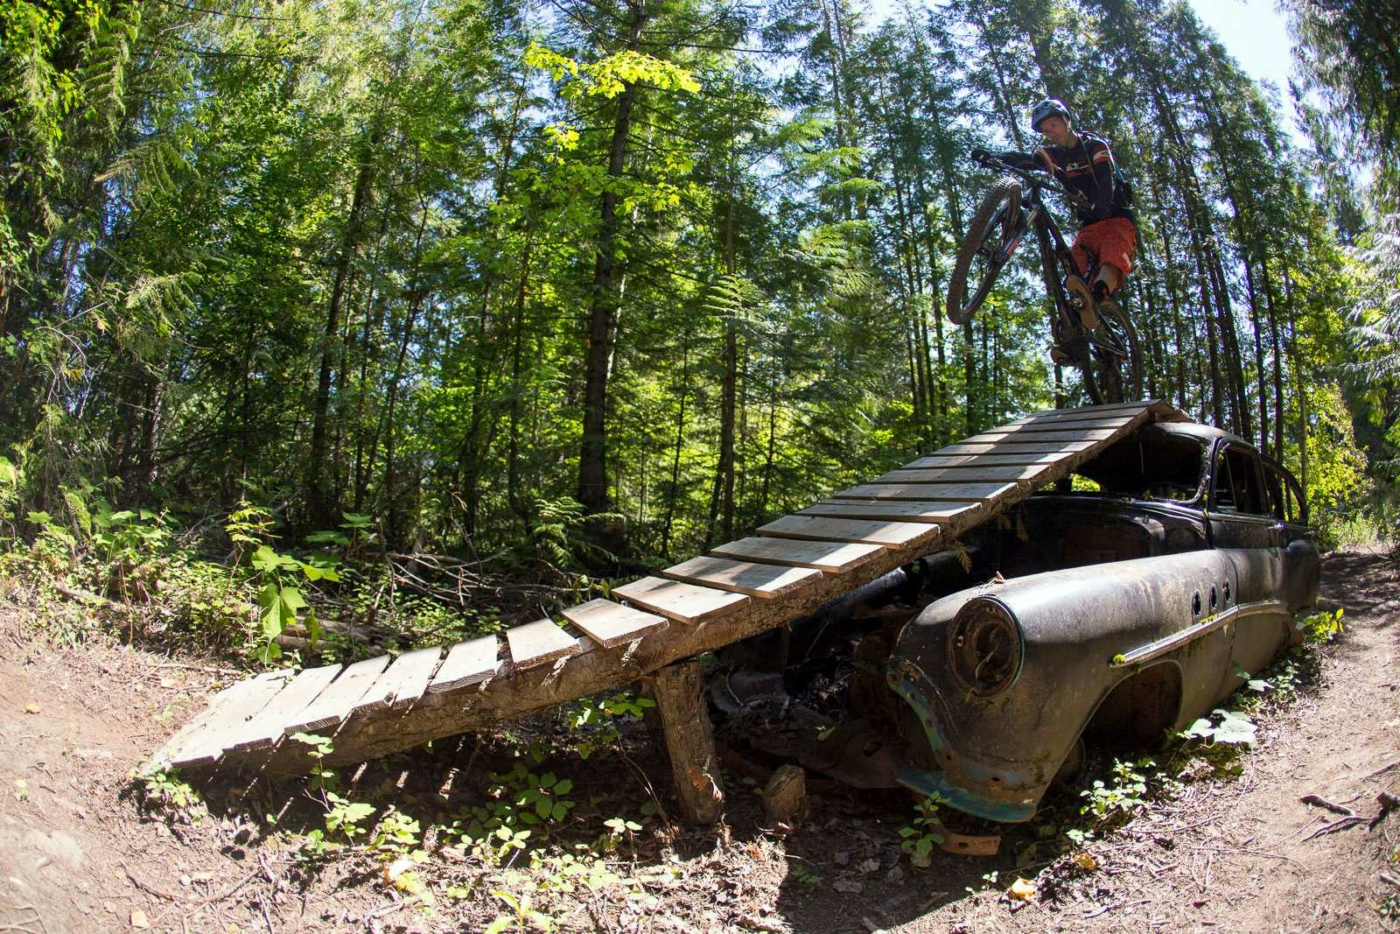 Person on mountain bike with front wheel popped up, ready to ride down wood slat ramp placed over the rusted out body of a car